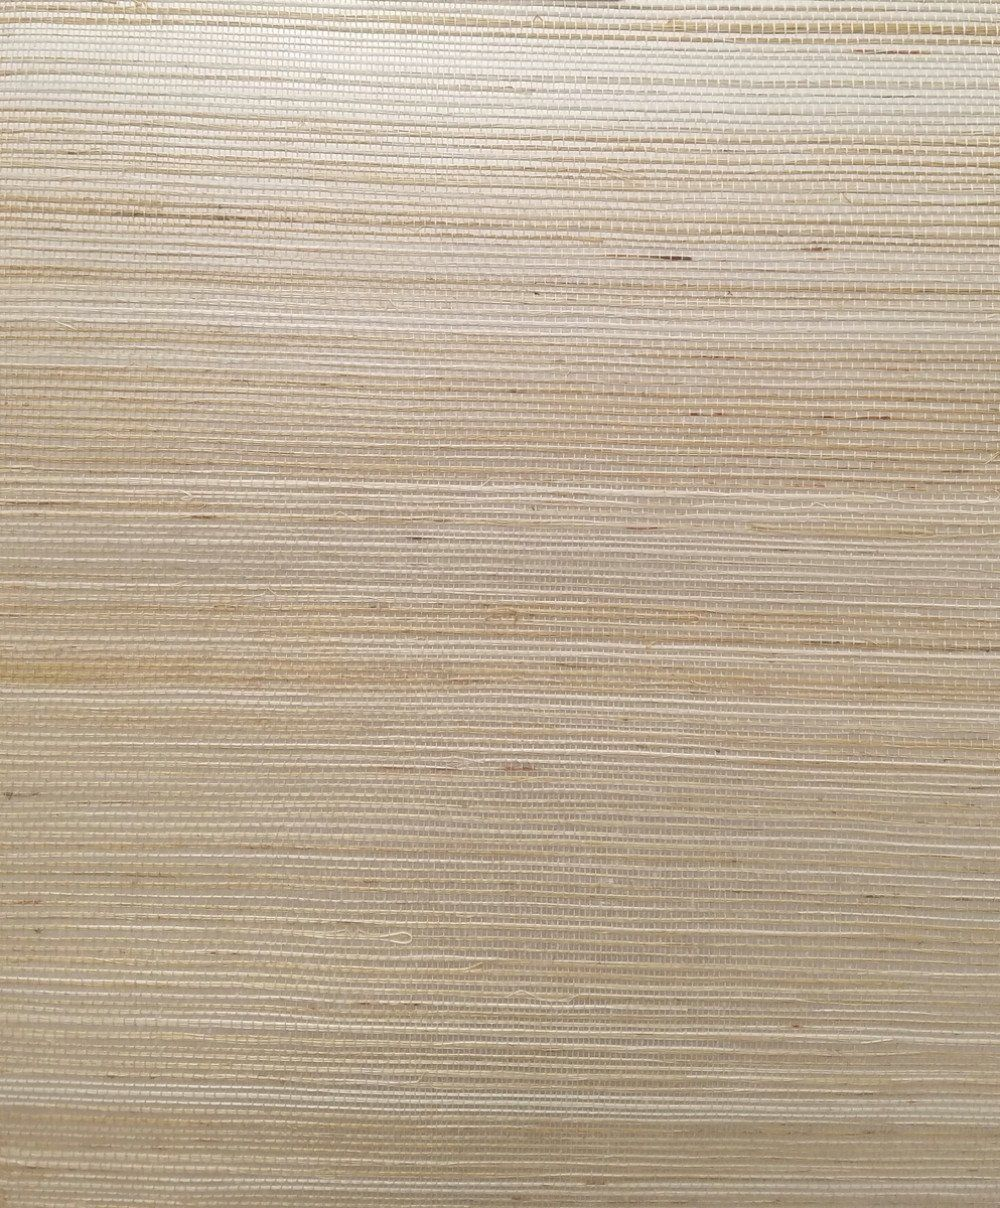 Sample Poetry Grasscloth Wallpaper In Tan From The Candice Olson Journ Grasscloth Wallpaper Grasscloth Wall Coverings